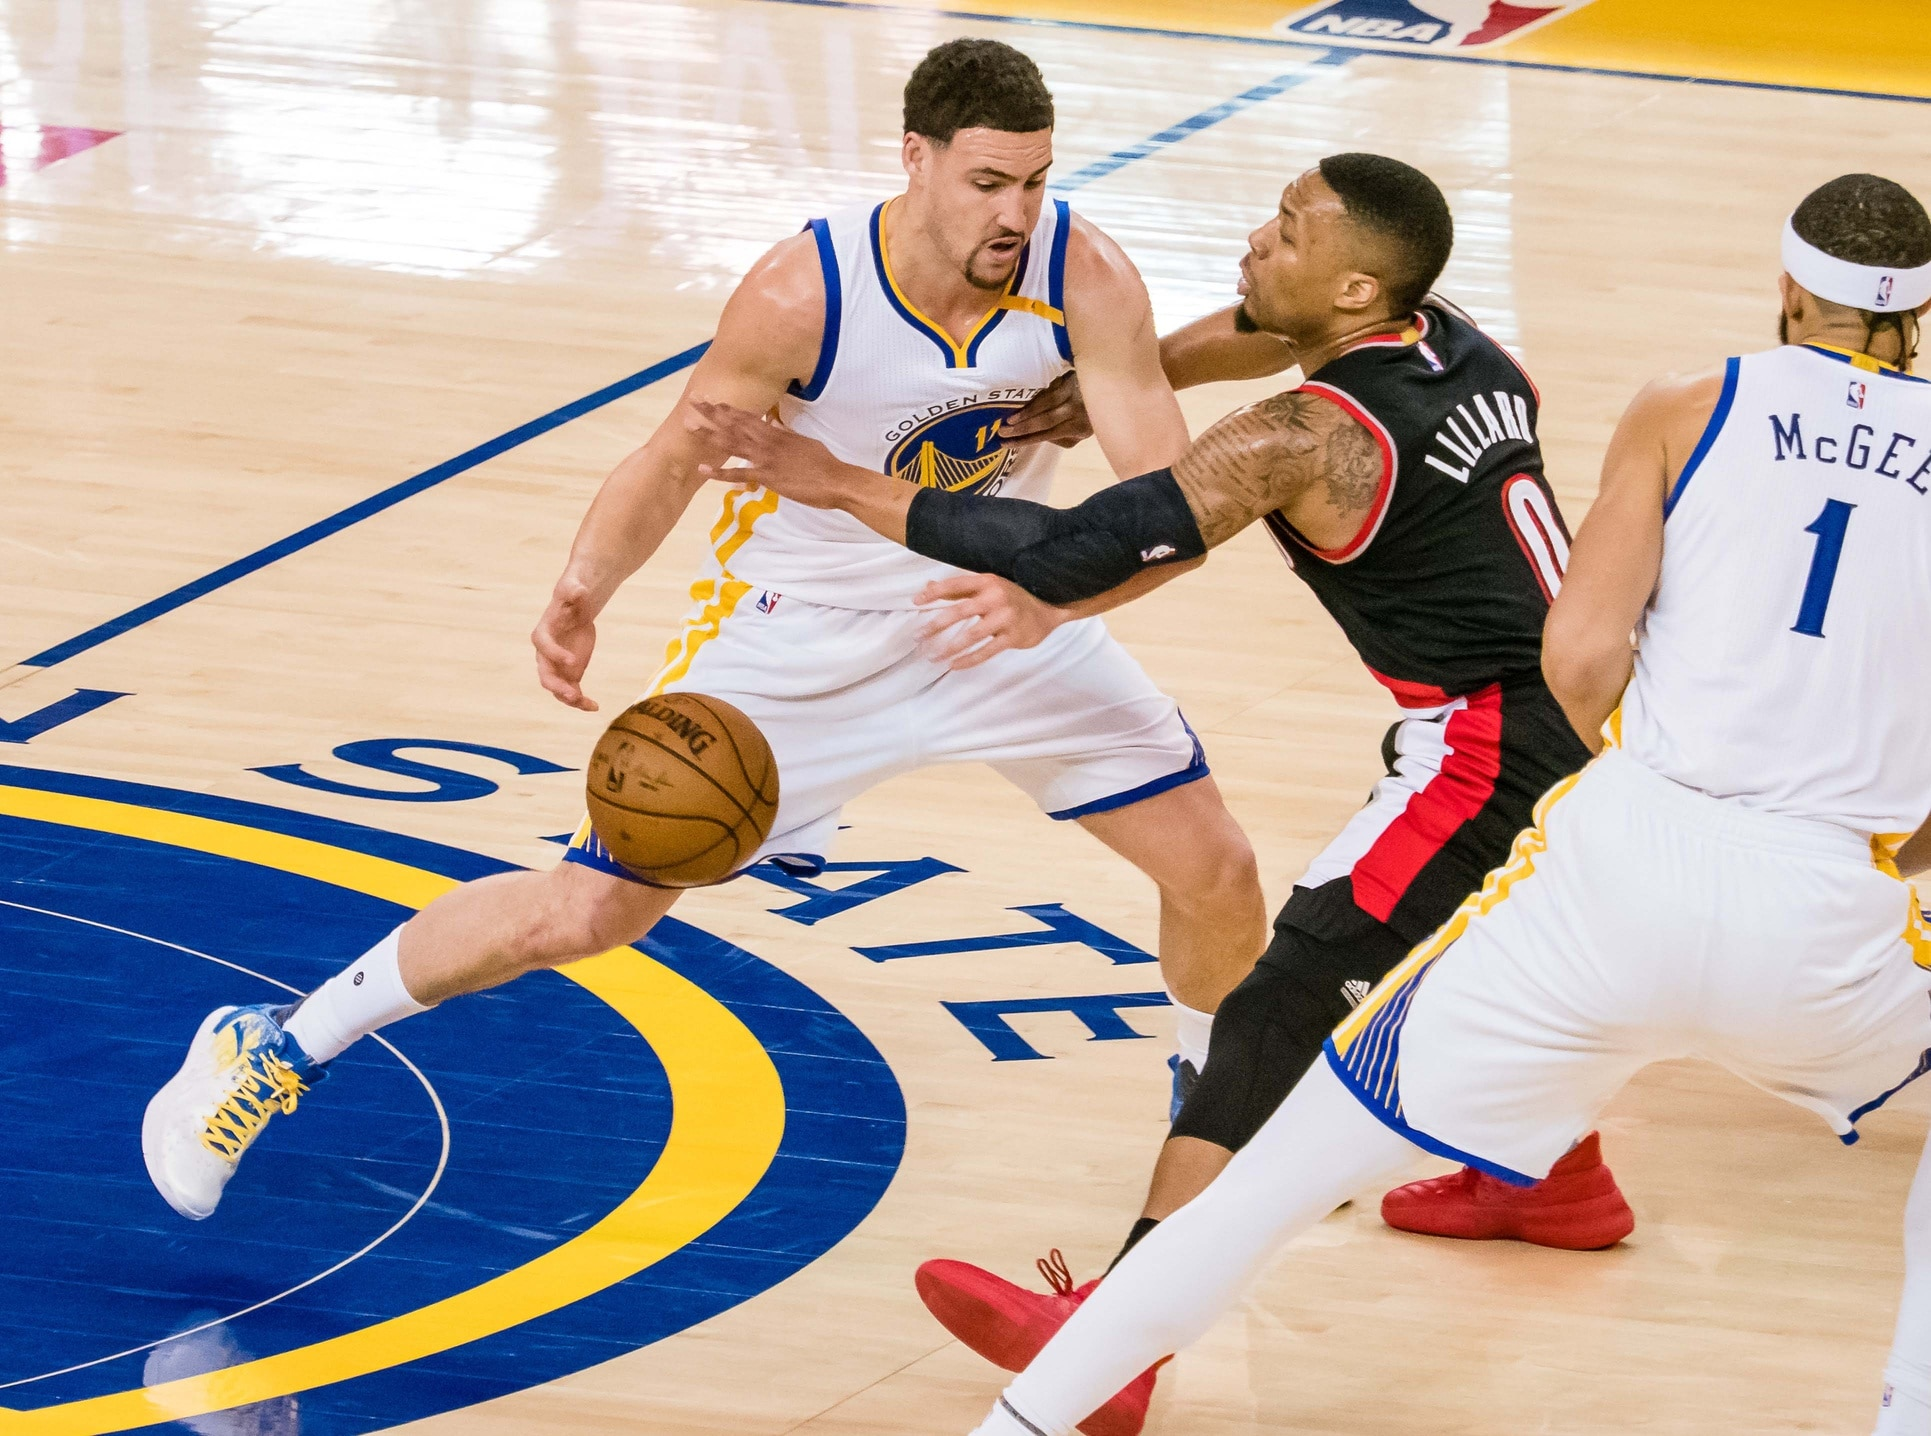 Caption: Apr 19, 2017; Oakland, CA, USA; Golden State Warriors guard Klay Thompson (11) against Portland Trail Blazers guard Damian Lillard (0) during the first quarter in game two of the first round of the 2017 NBA Playoffs at Oracle Arena. Mandatory Credit: Kelley L Cox-USA TODAY Sports